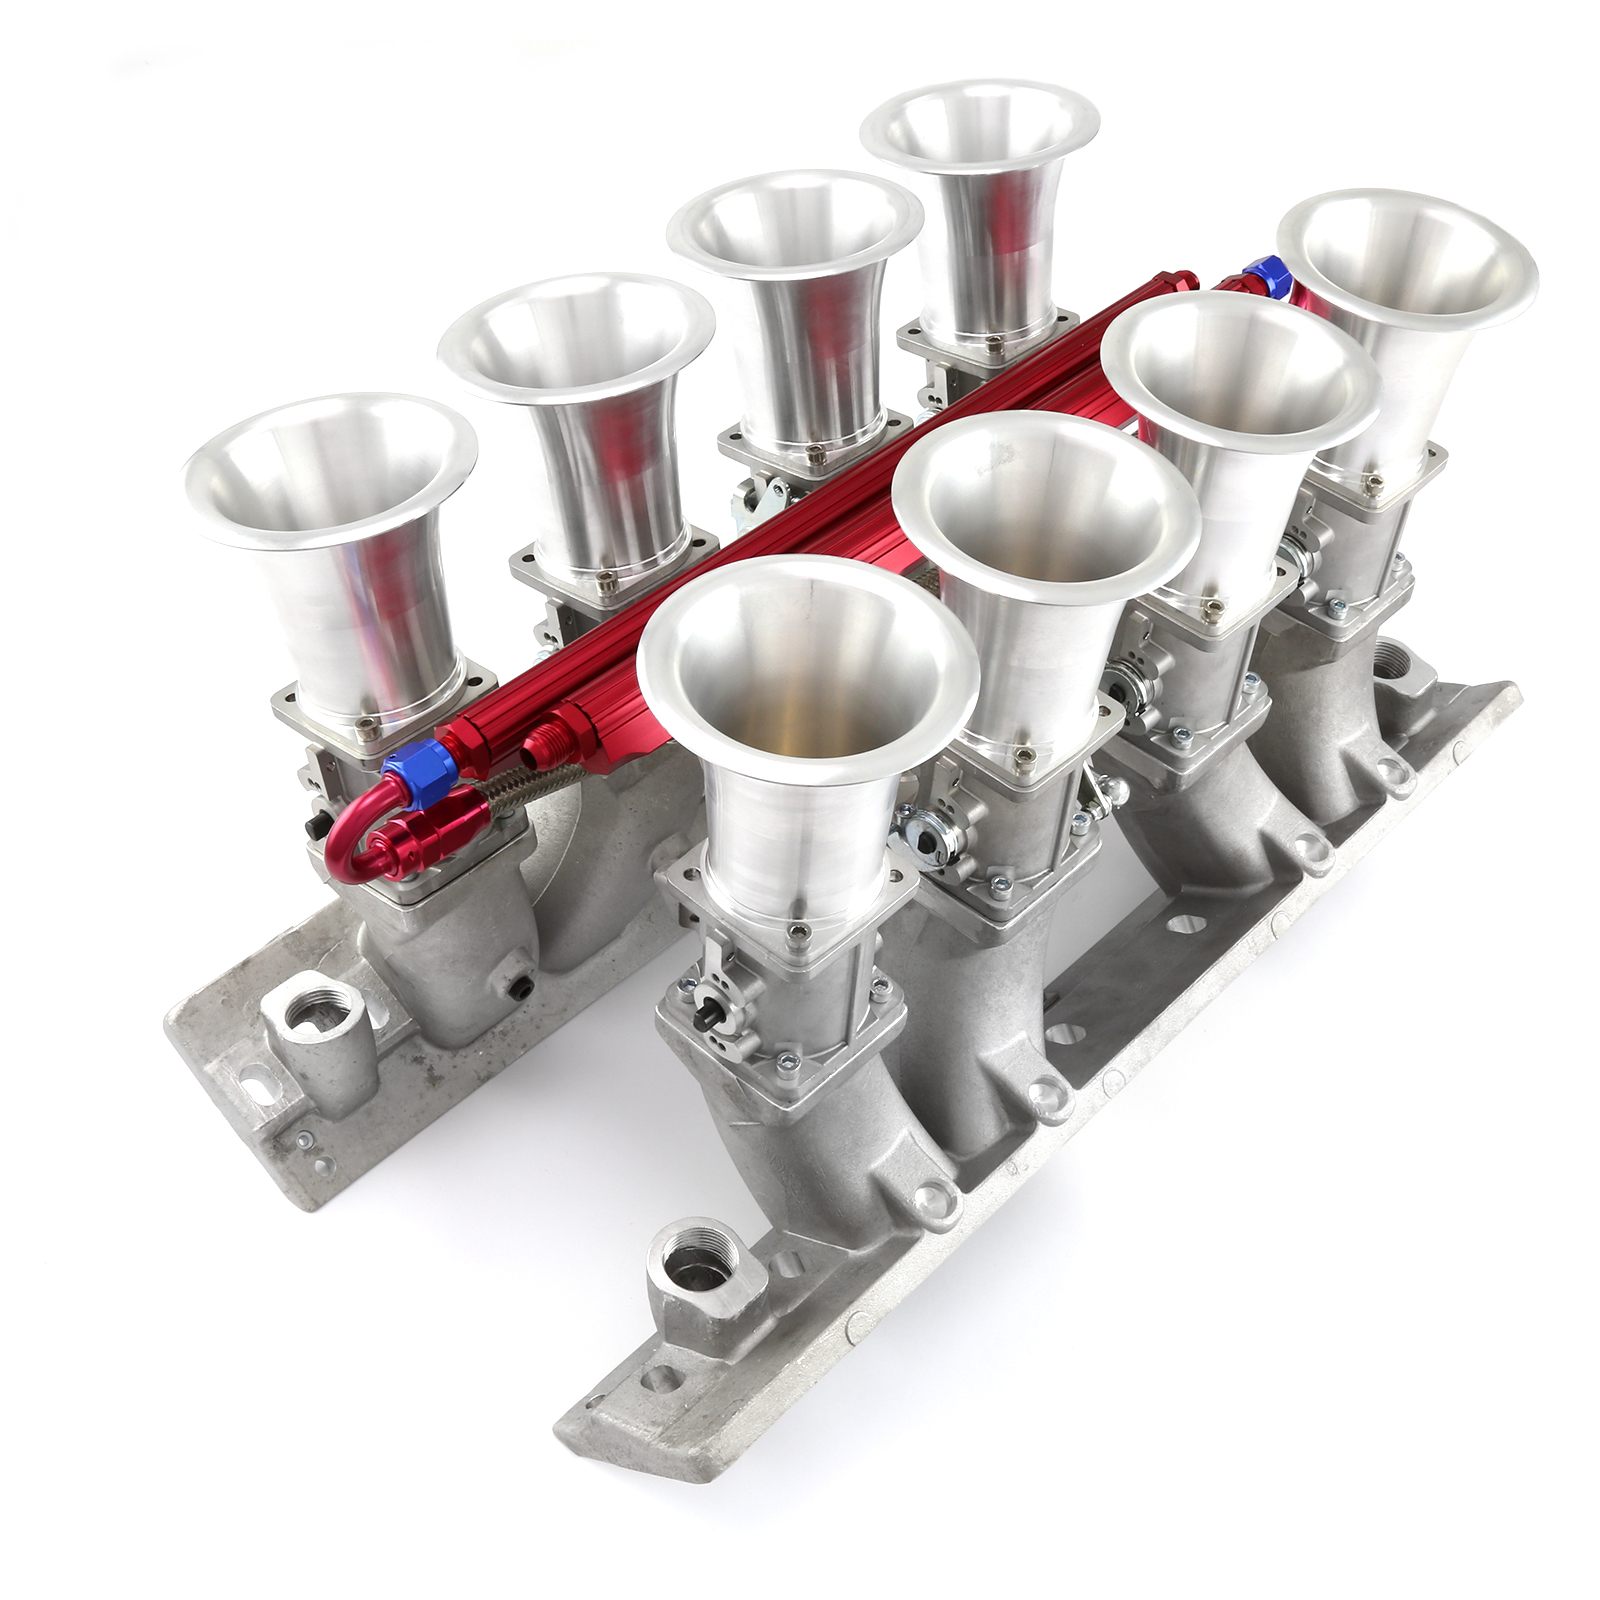 Chevy BBC 454 Down Draft EFI Stack Intake Manifold System